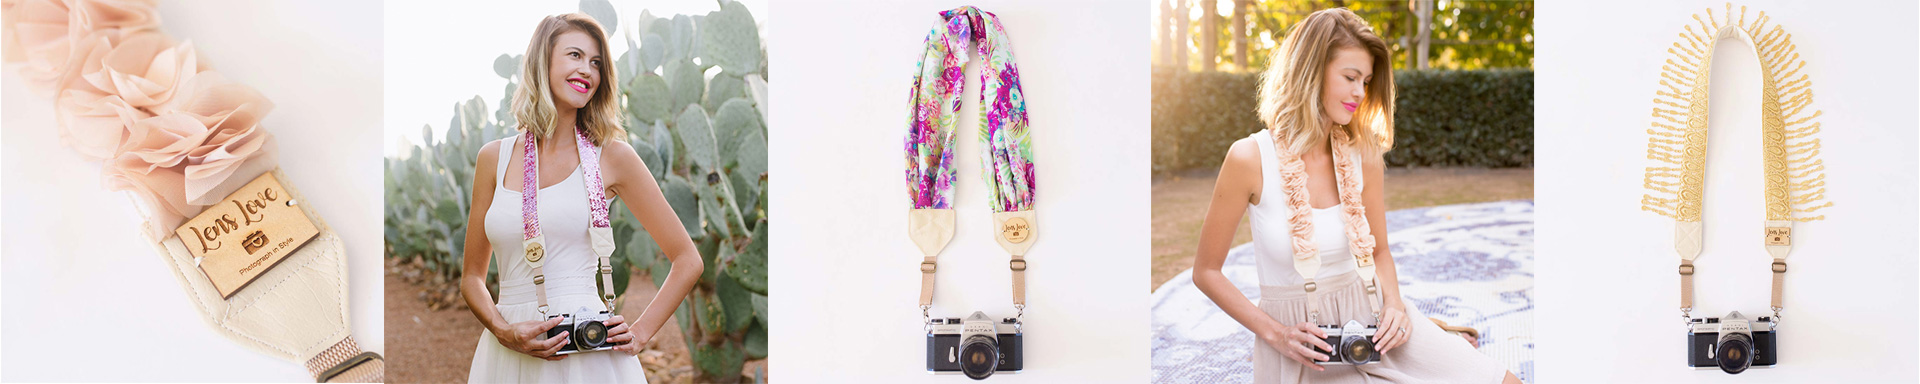 Photograph Accessories in gallery for Desktop